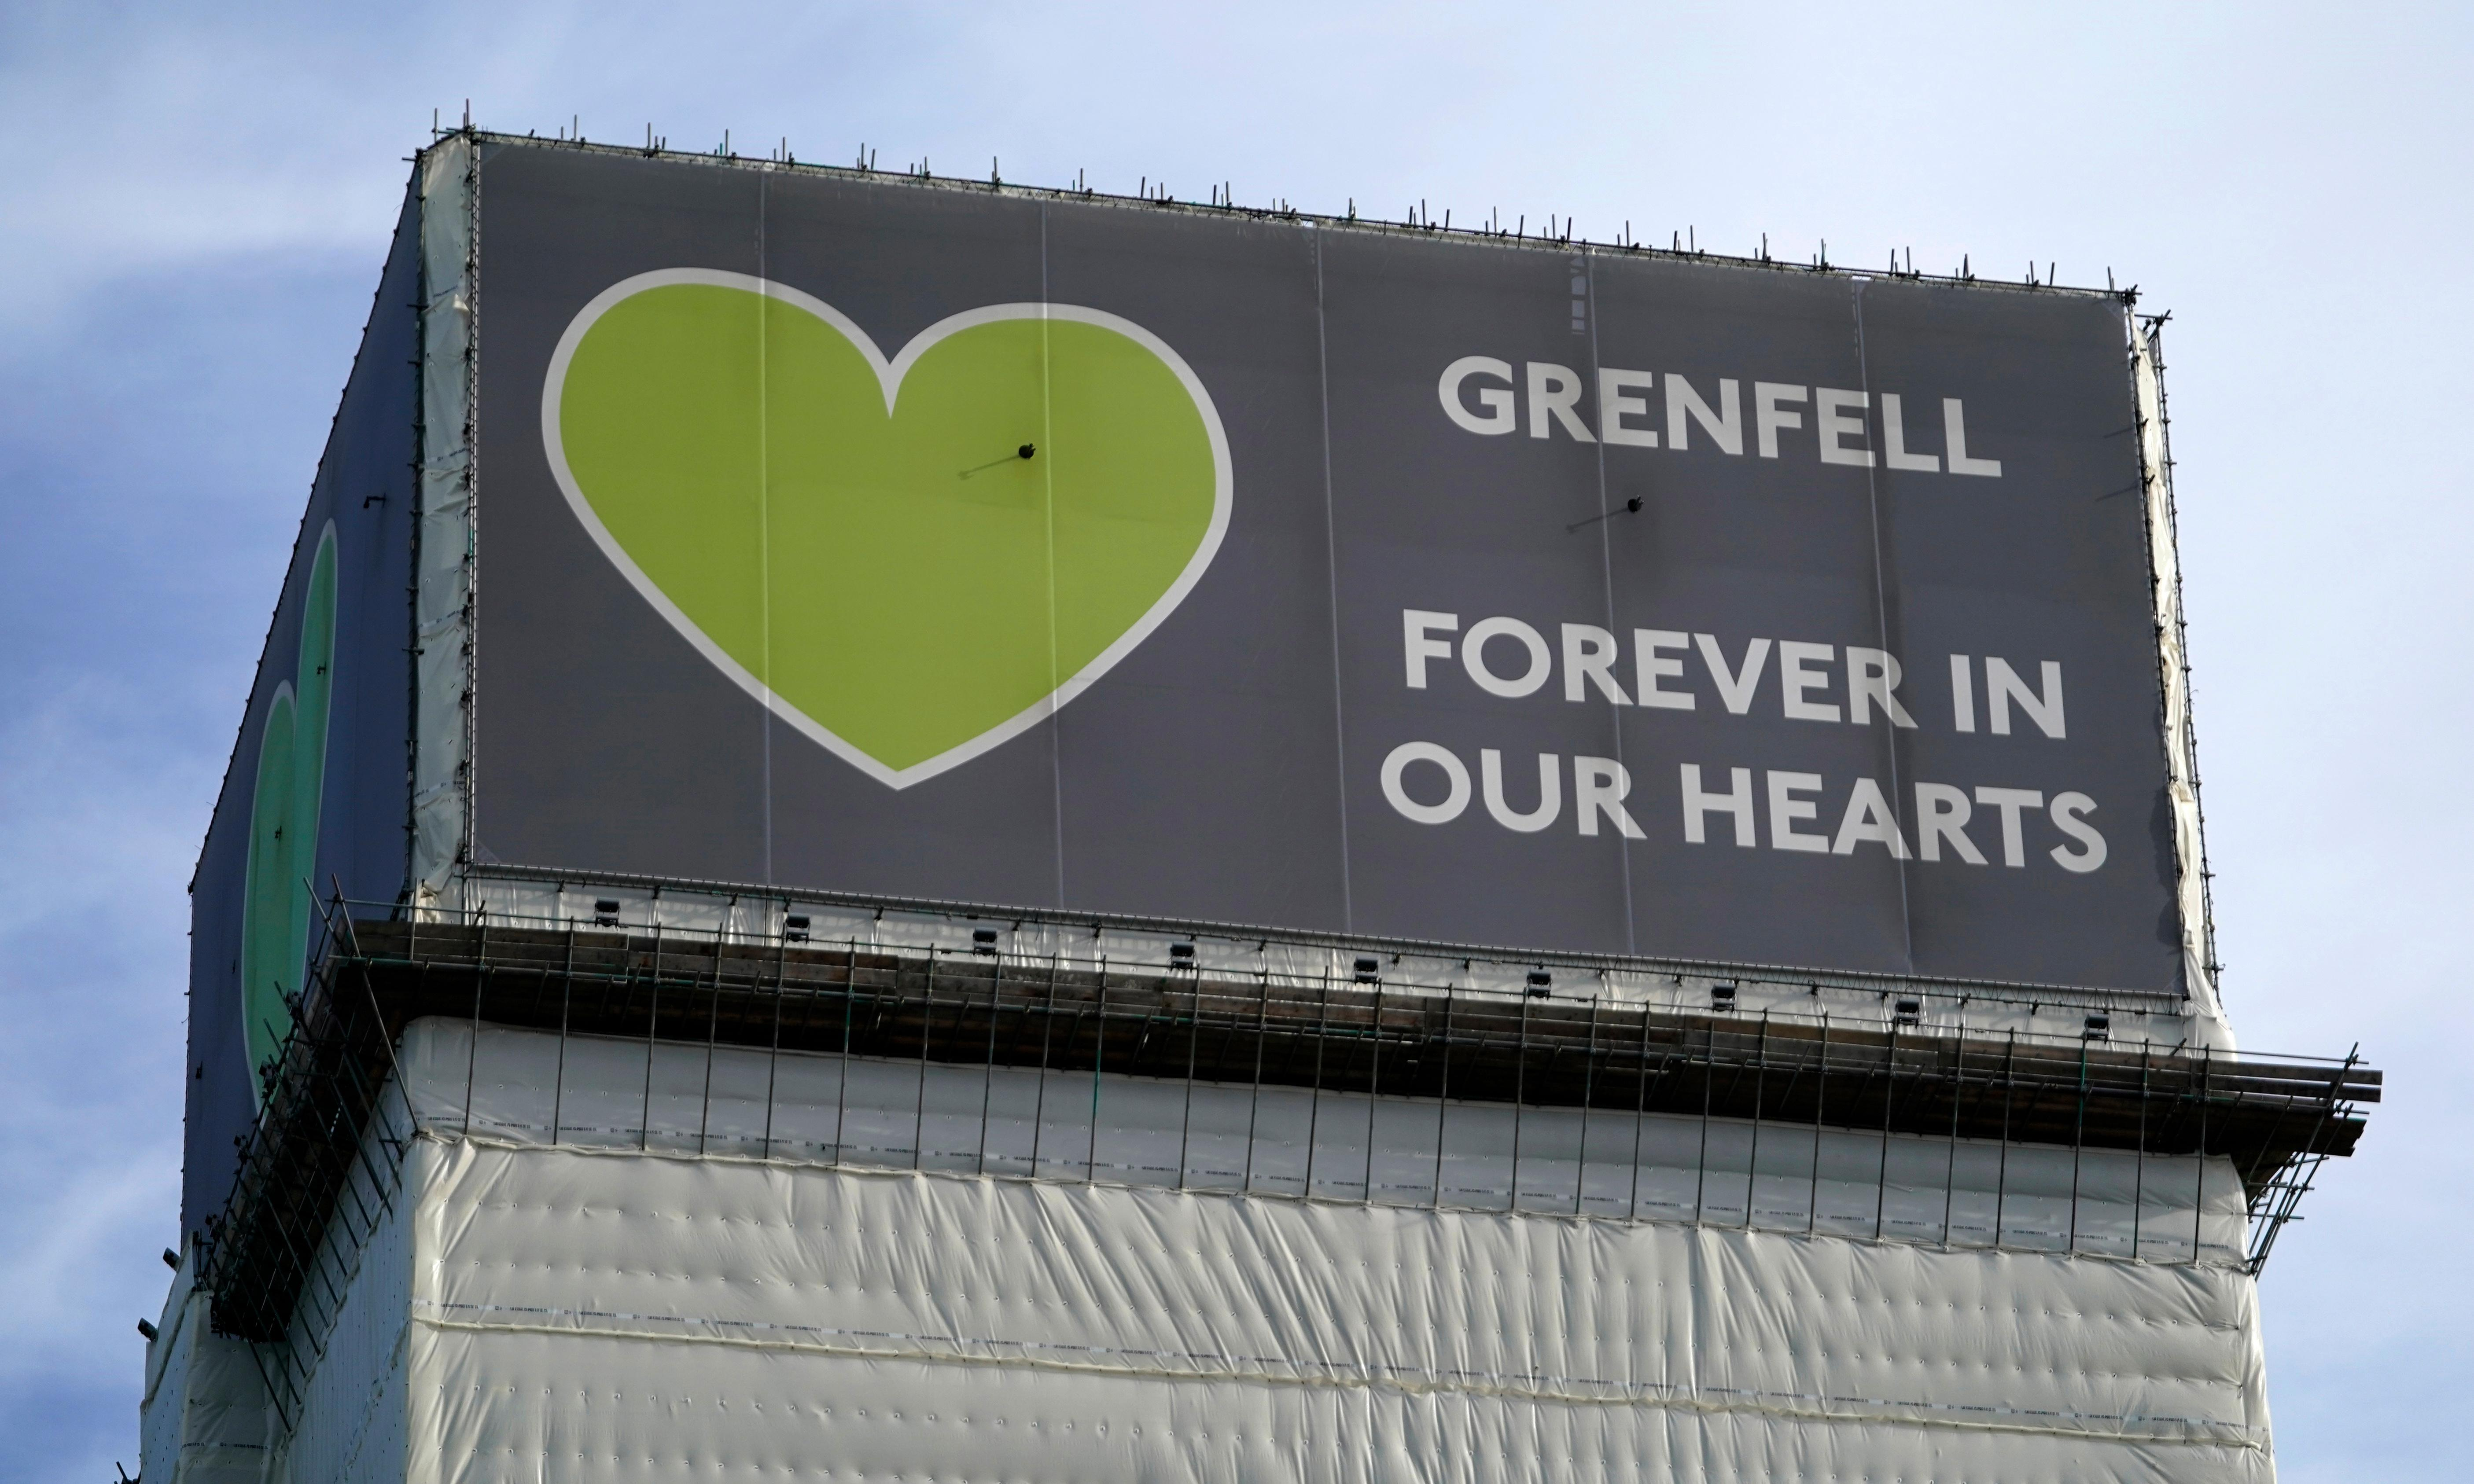 Grenfell survivors criticise 'out of touch' Boris Johnson